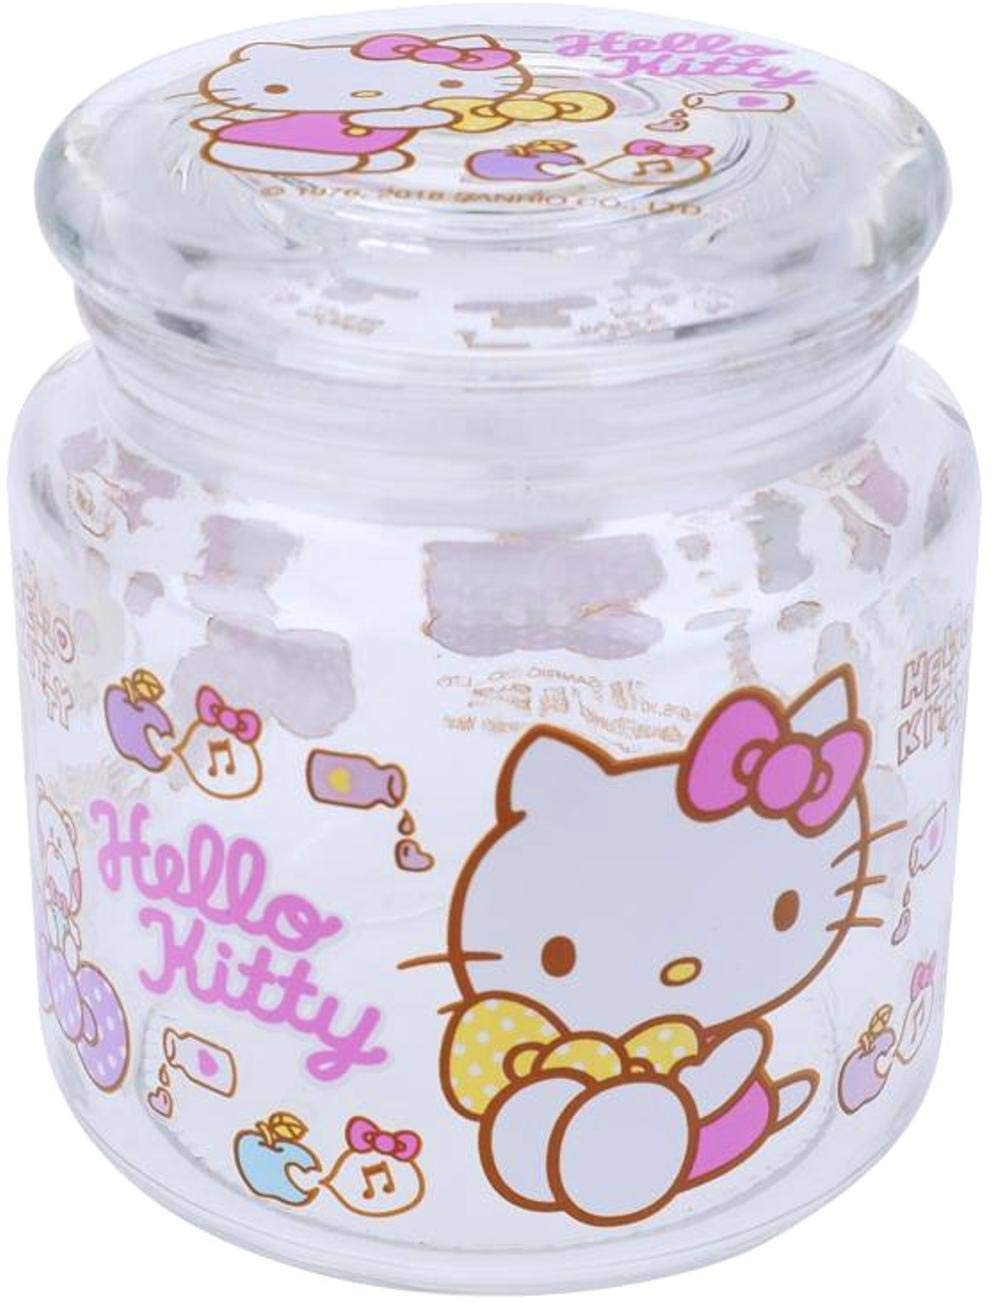 Hello Kitty Transparent Glass Storage Jar Snacks Cookies Sugar Airtight Container 480 ml Kitchen Canister